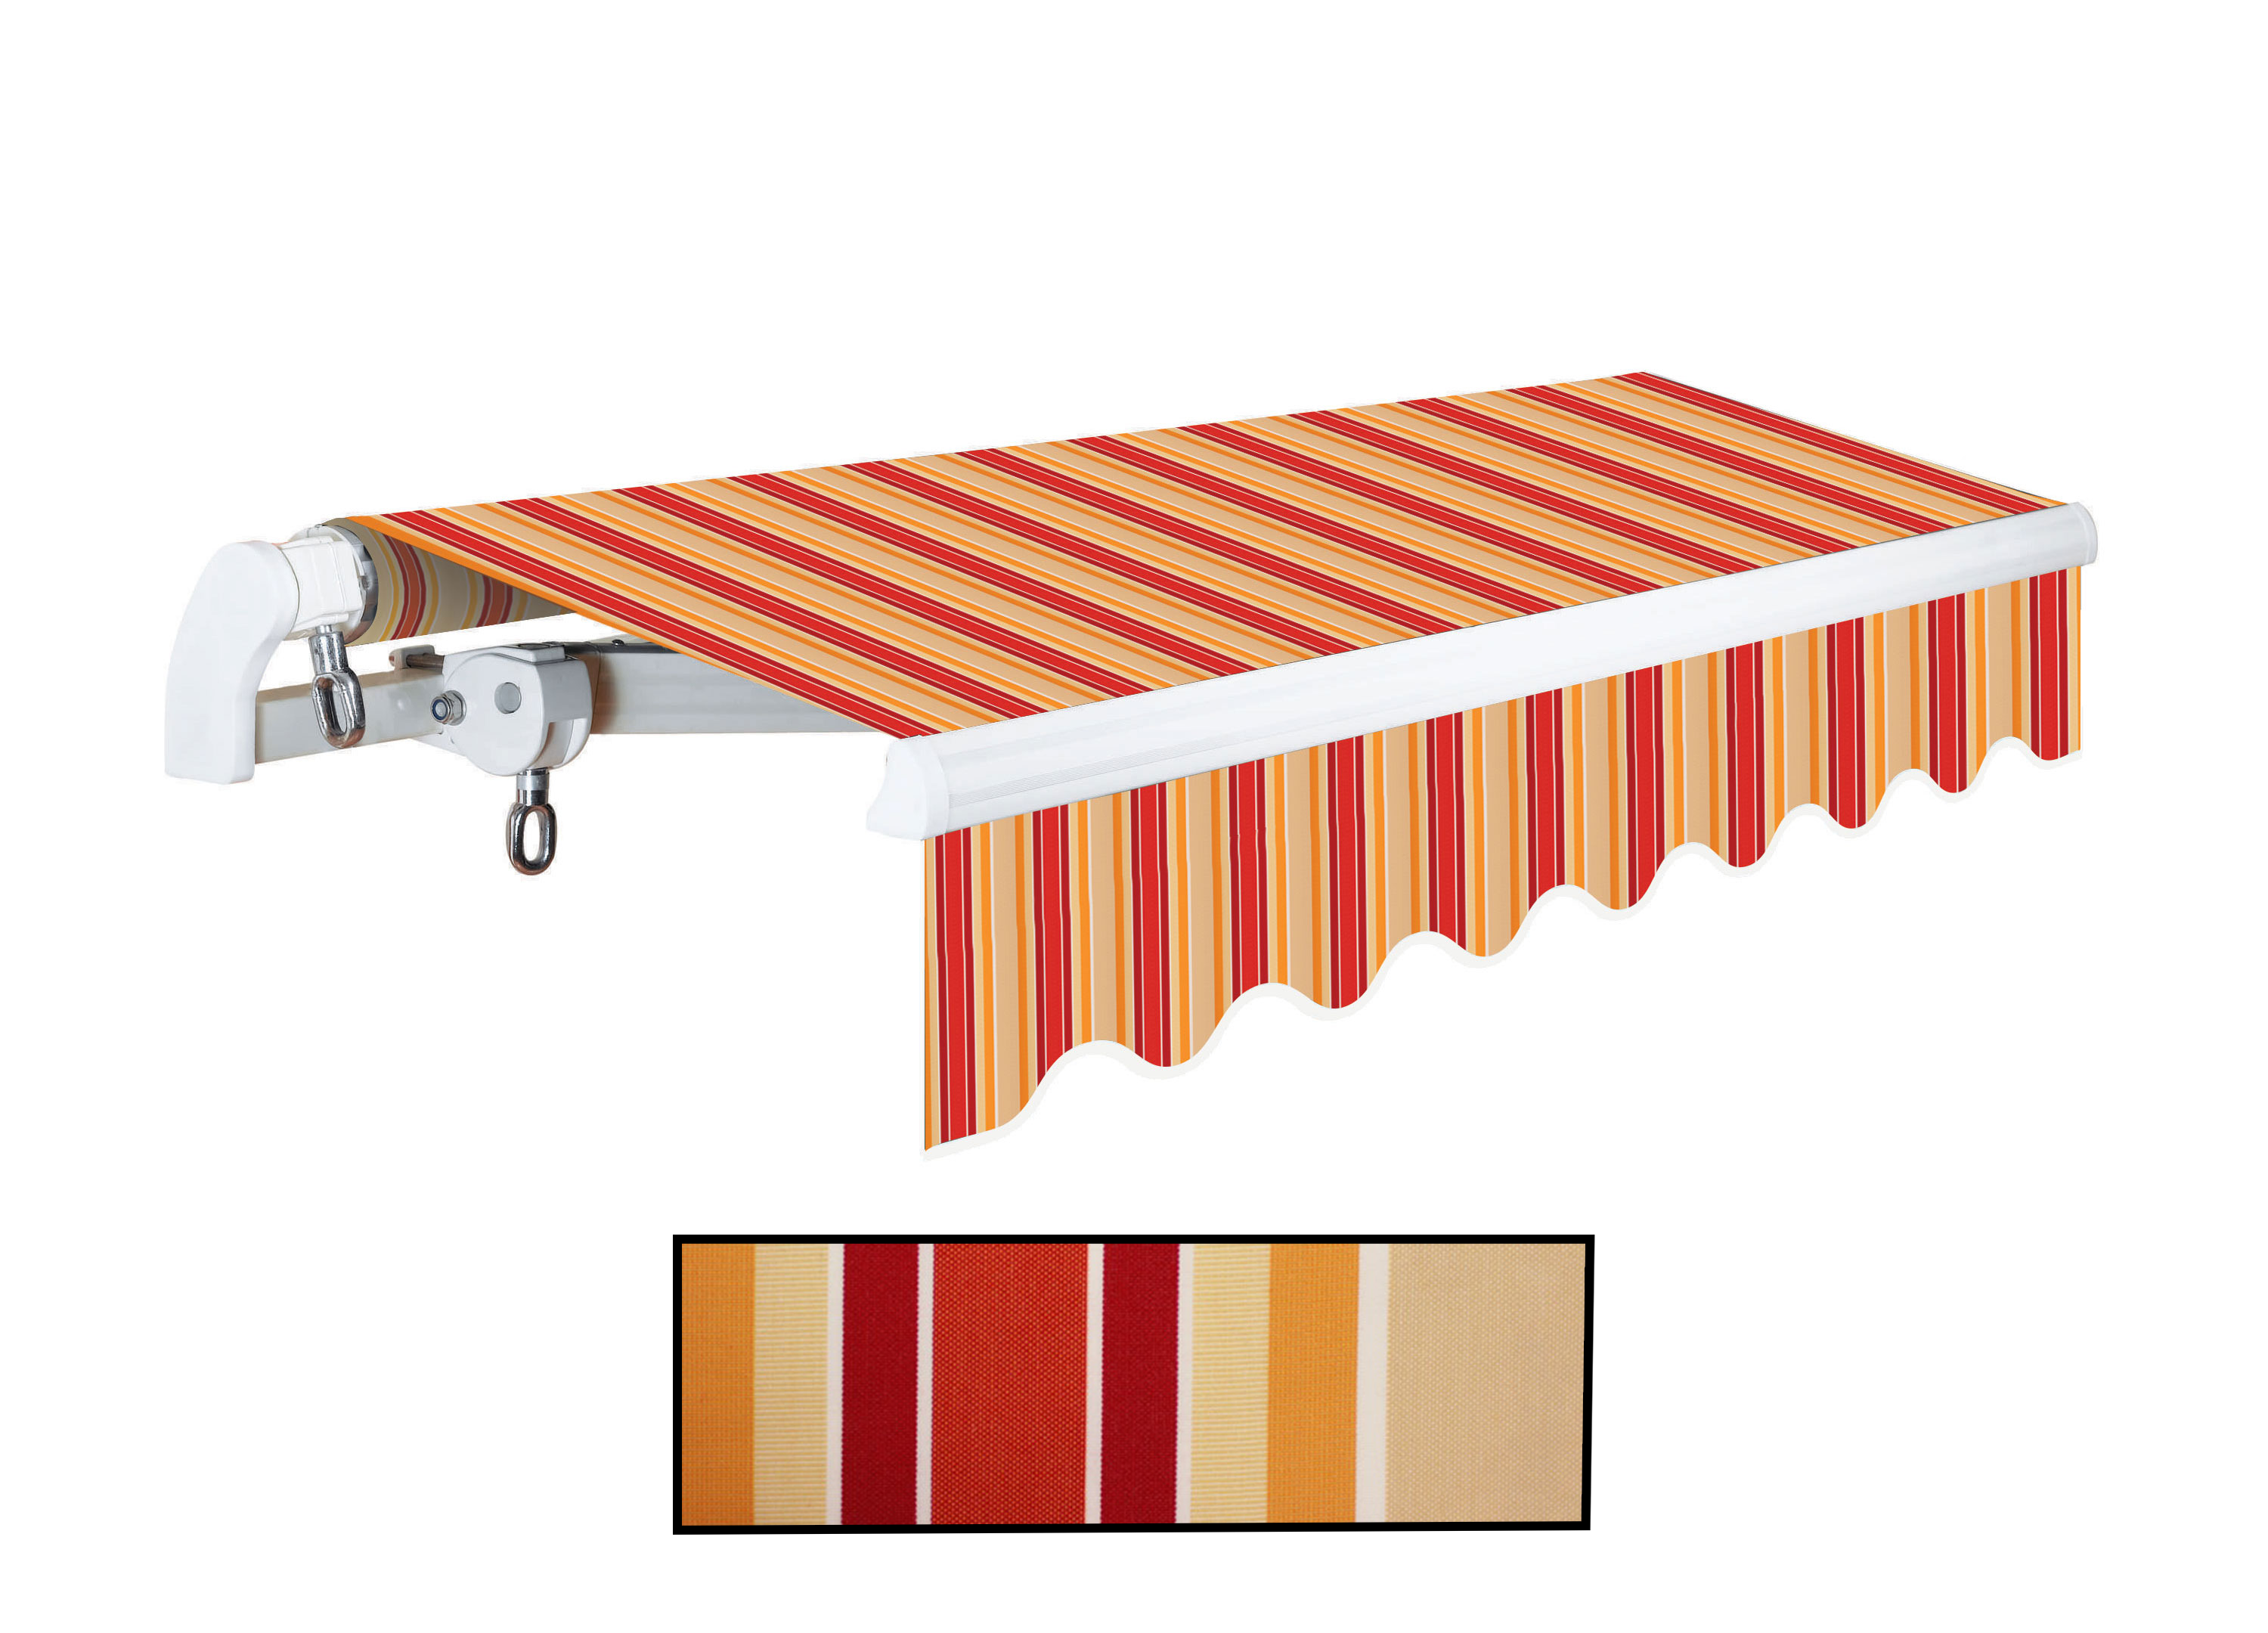 Advaning 10x8ft. S Series Manual Awning, Desert Red w/ Sand Beige Stripes